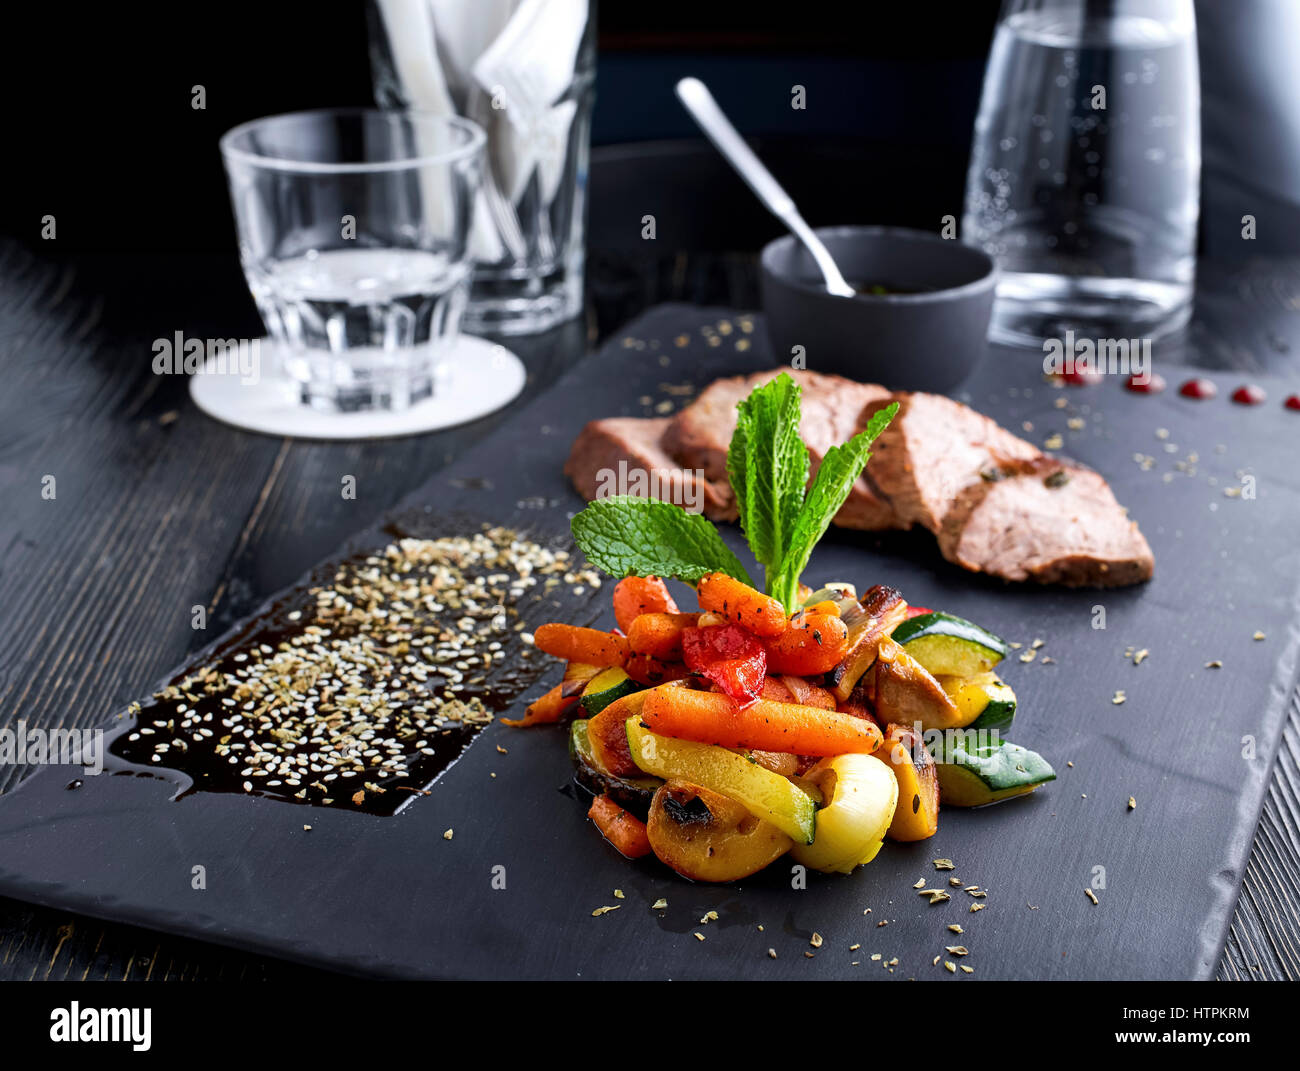 Simple Steak with Roasted Vegetables, ahead shot - Stock Image